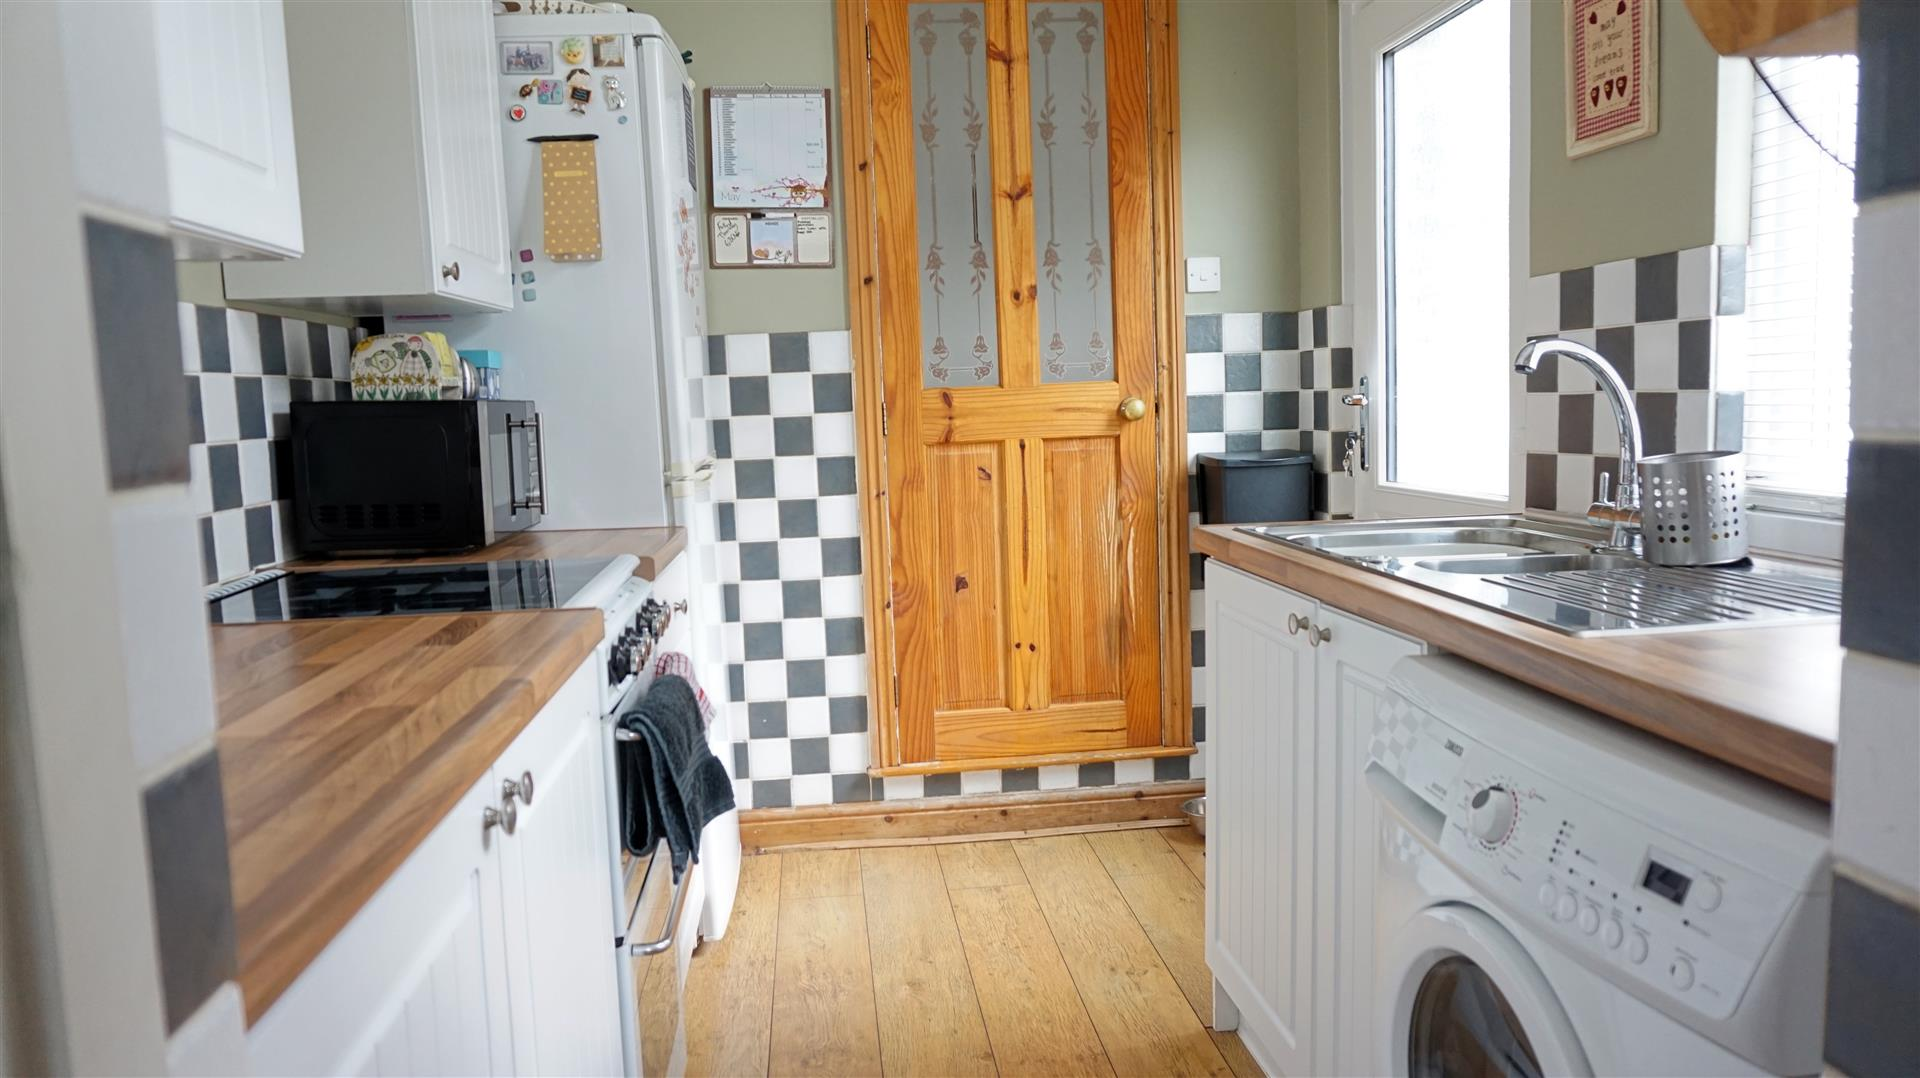 Double Glazed Kitchen Doors Property Details Bob Gutteridge Estate Agents And Valuers